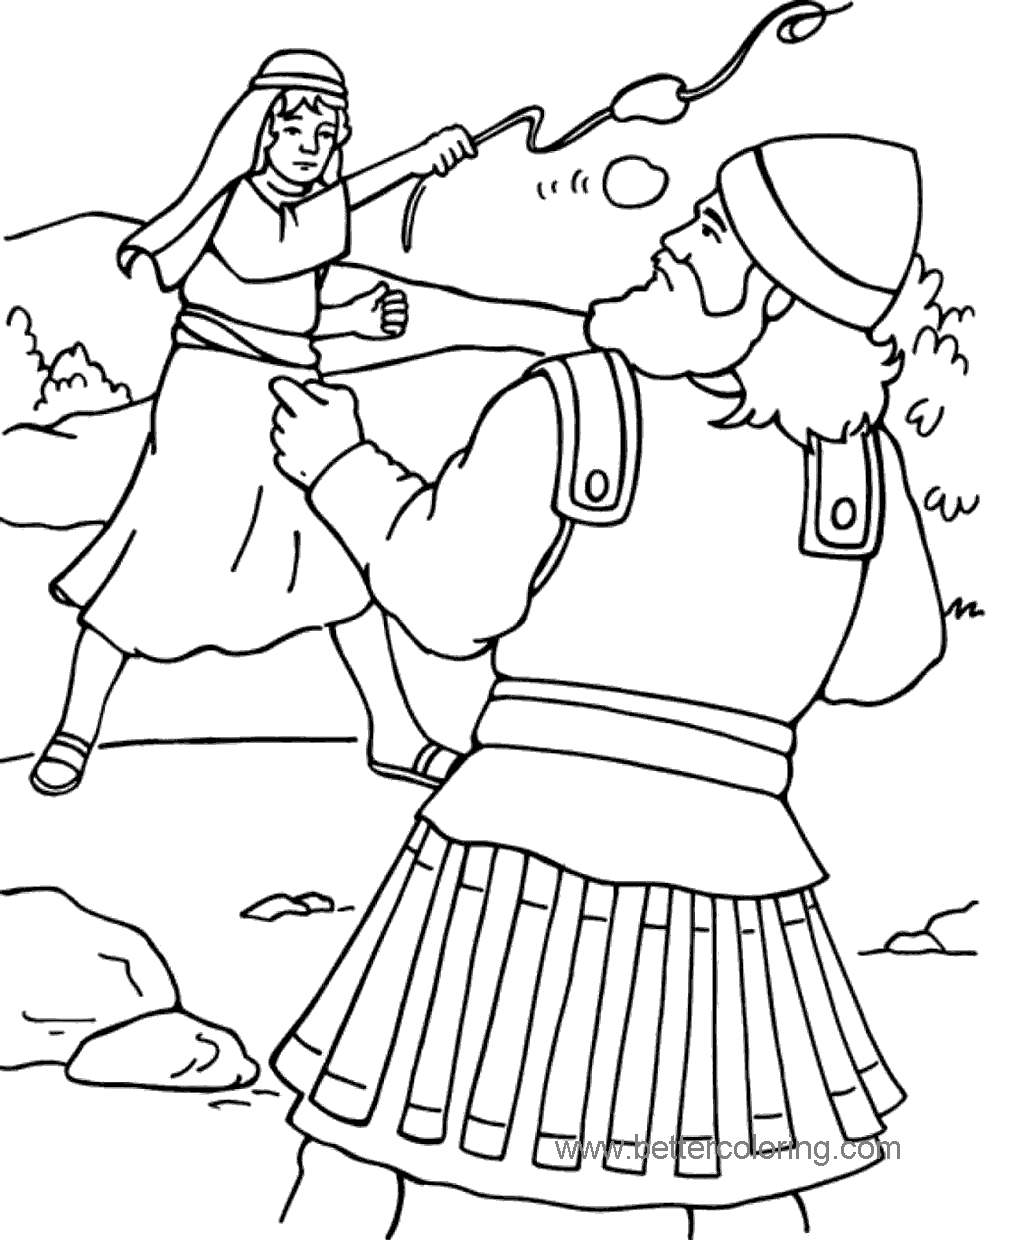 Printable David And Goliath Coloring Pages for Girls 13